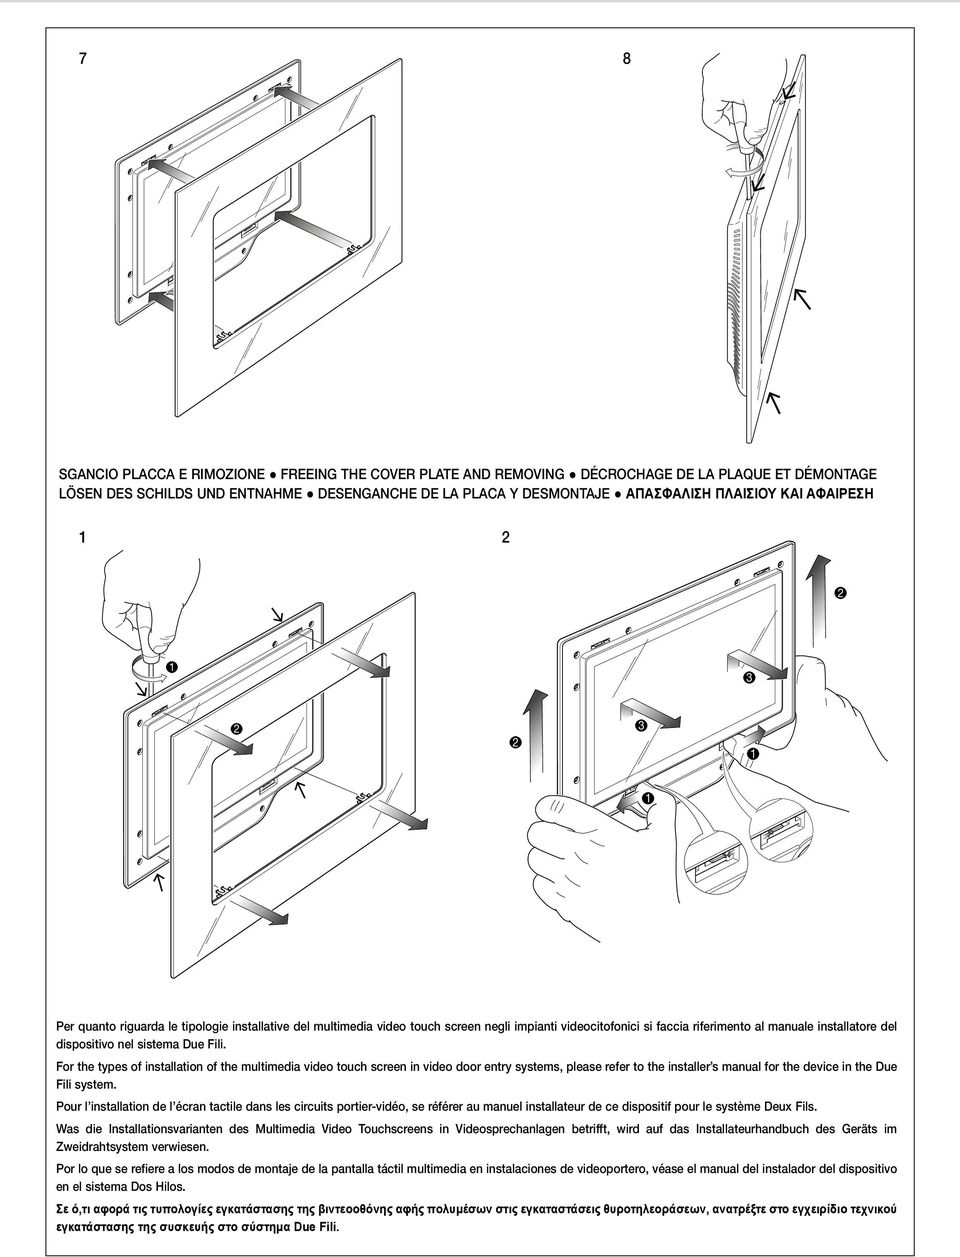 Due Fili. For the types of installation of the multimedia video touch screen in video door entry systems, please refer to the installer s manual for the device in the Due Fili system.